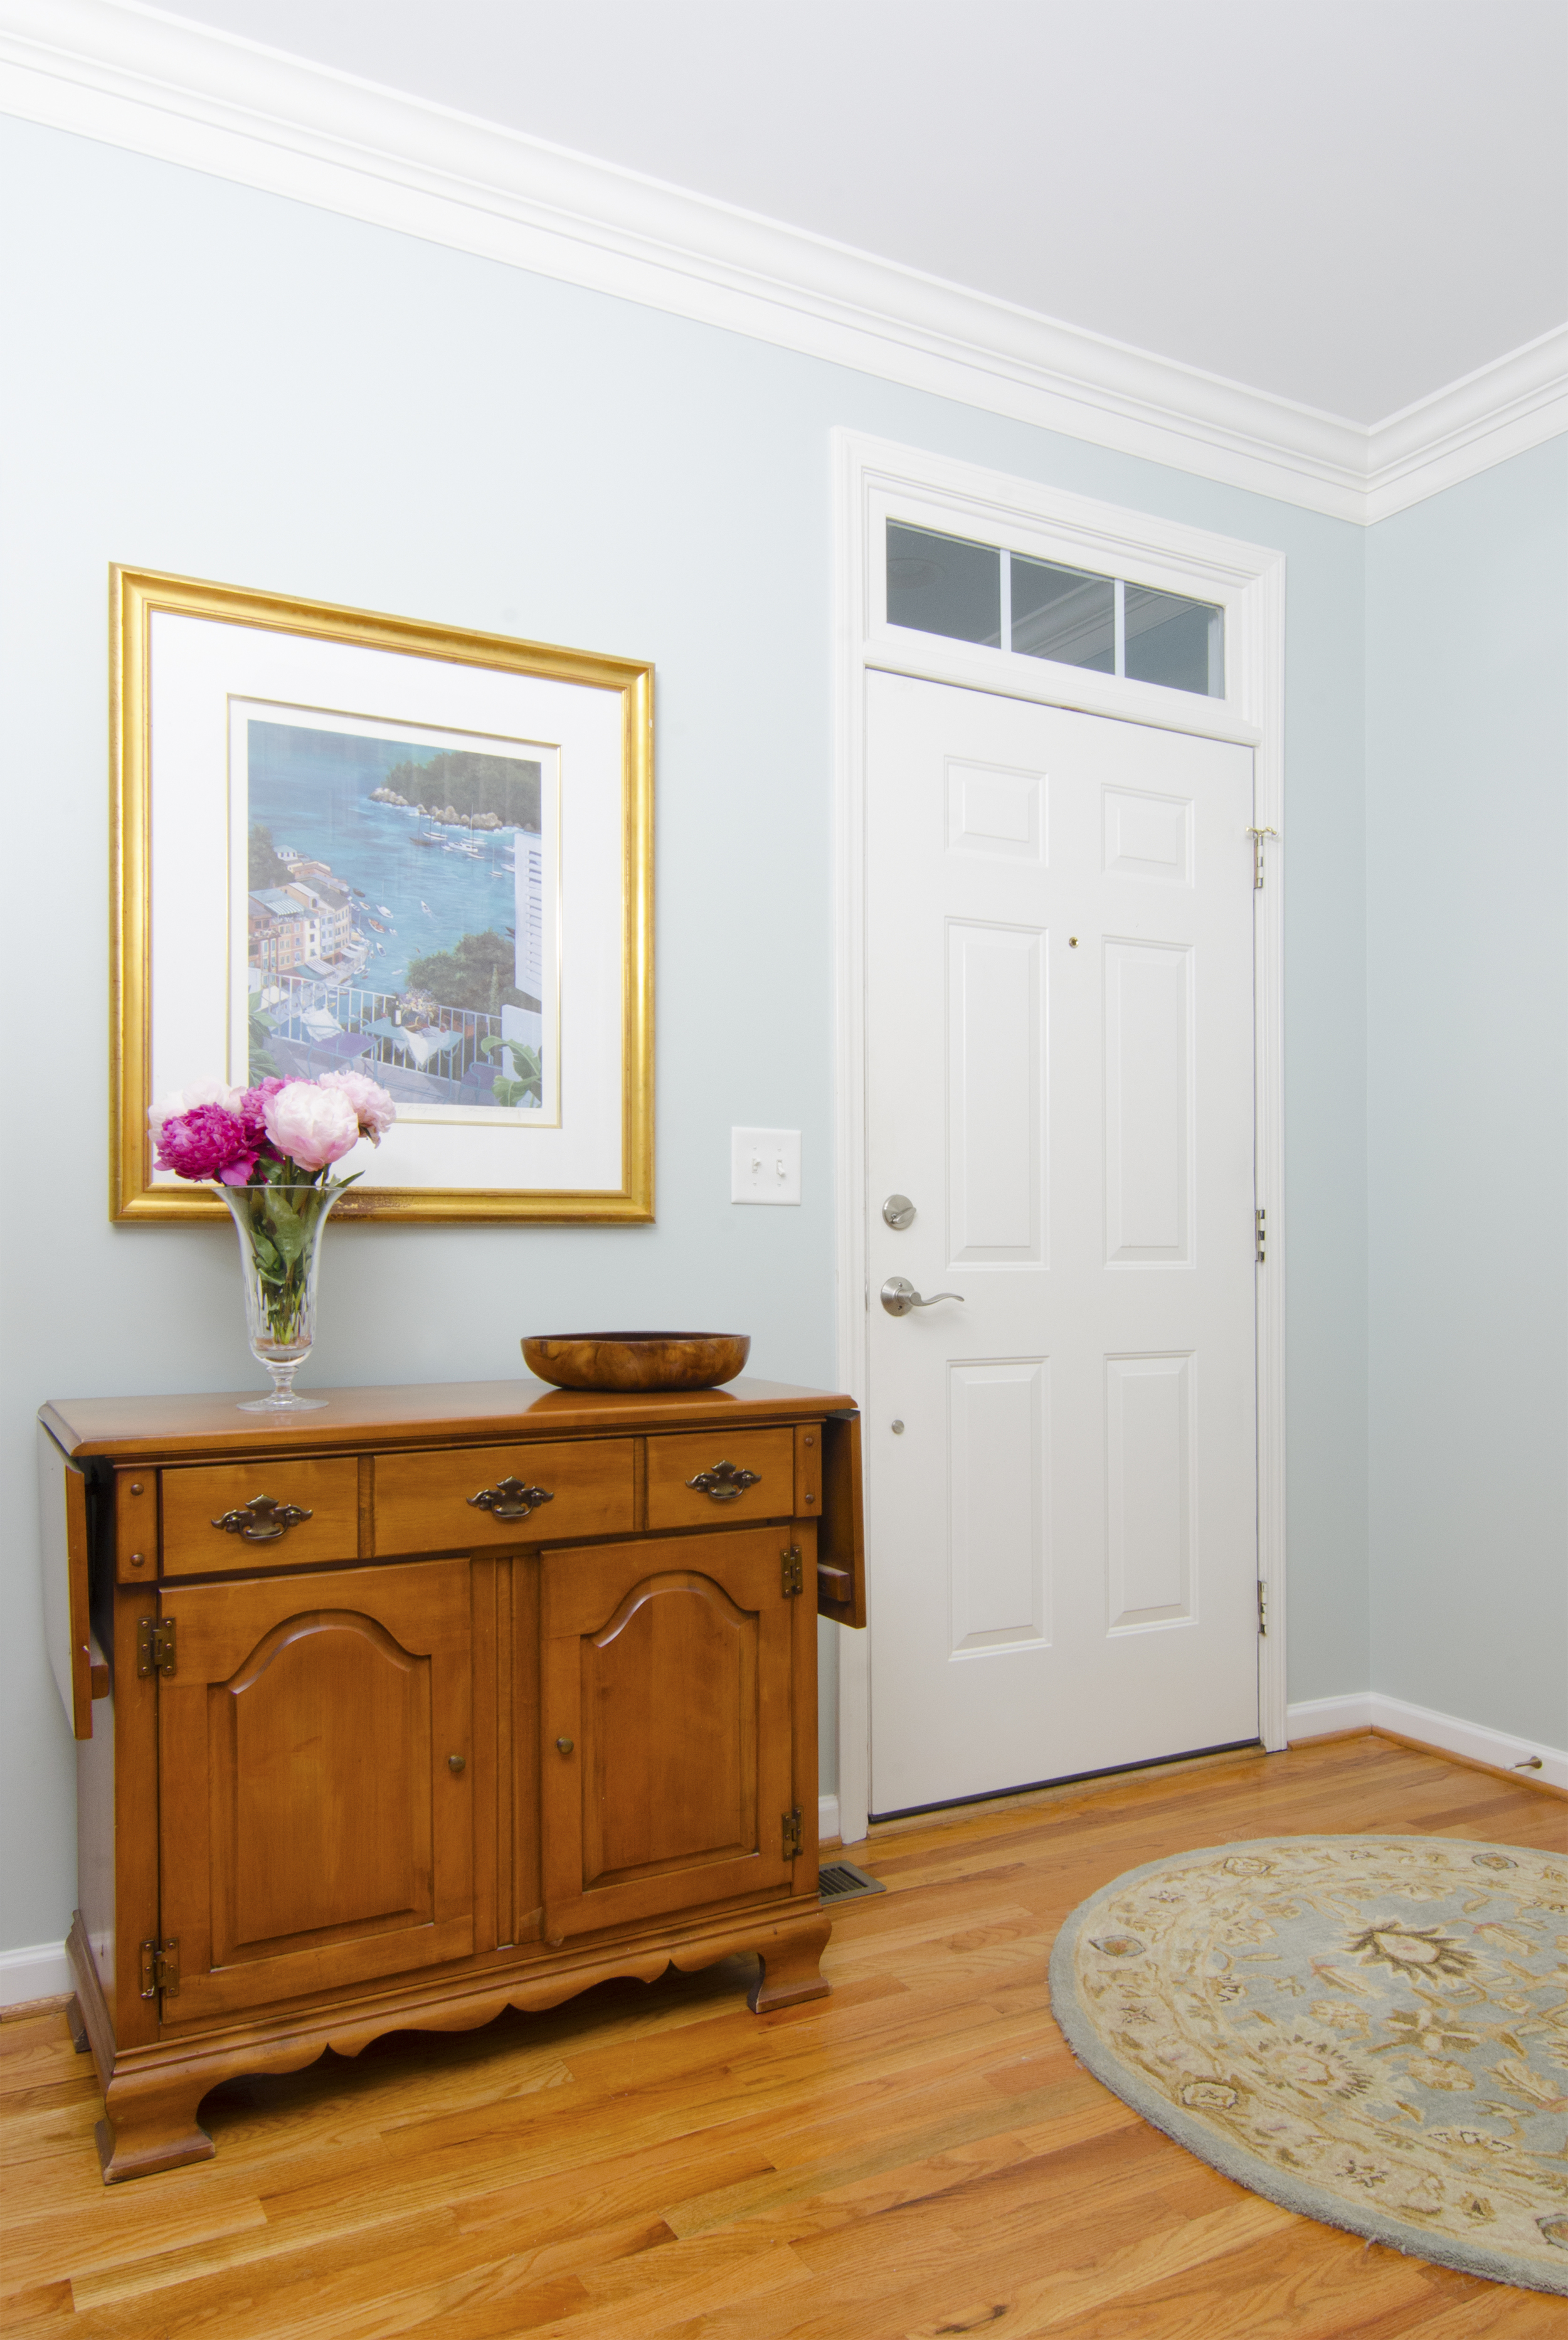 Artful Interiors – First Home - Entry